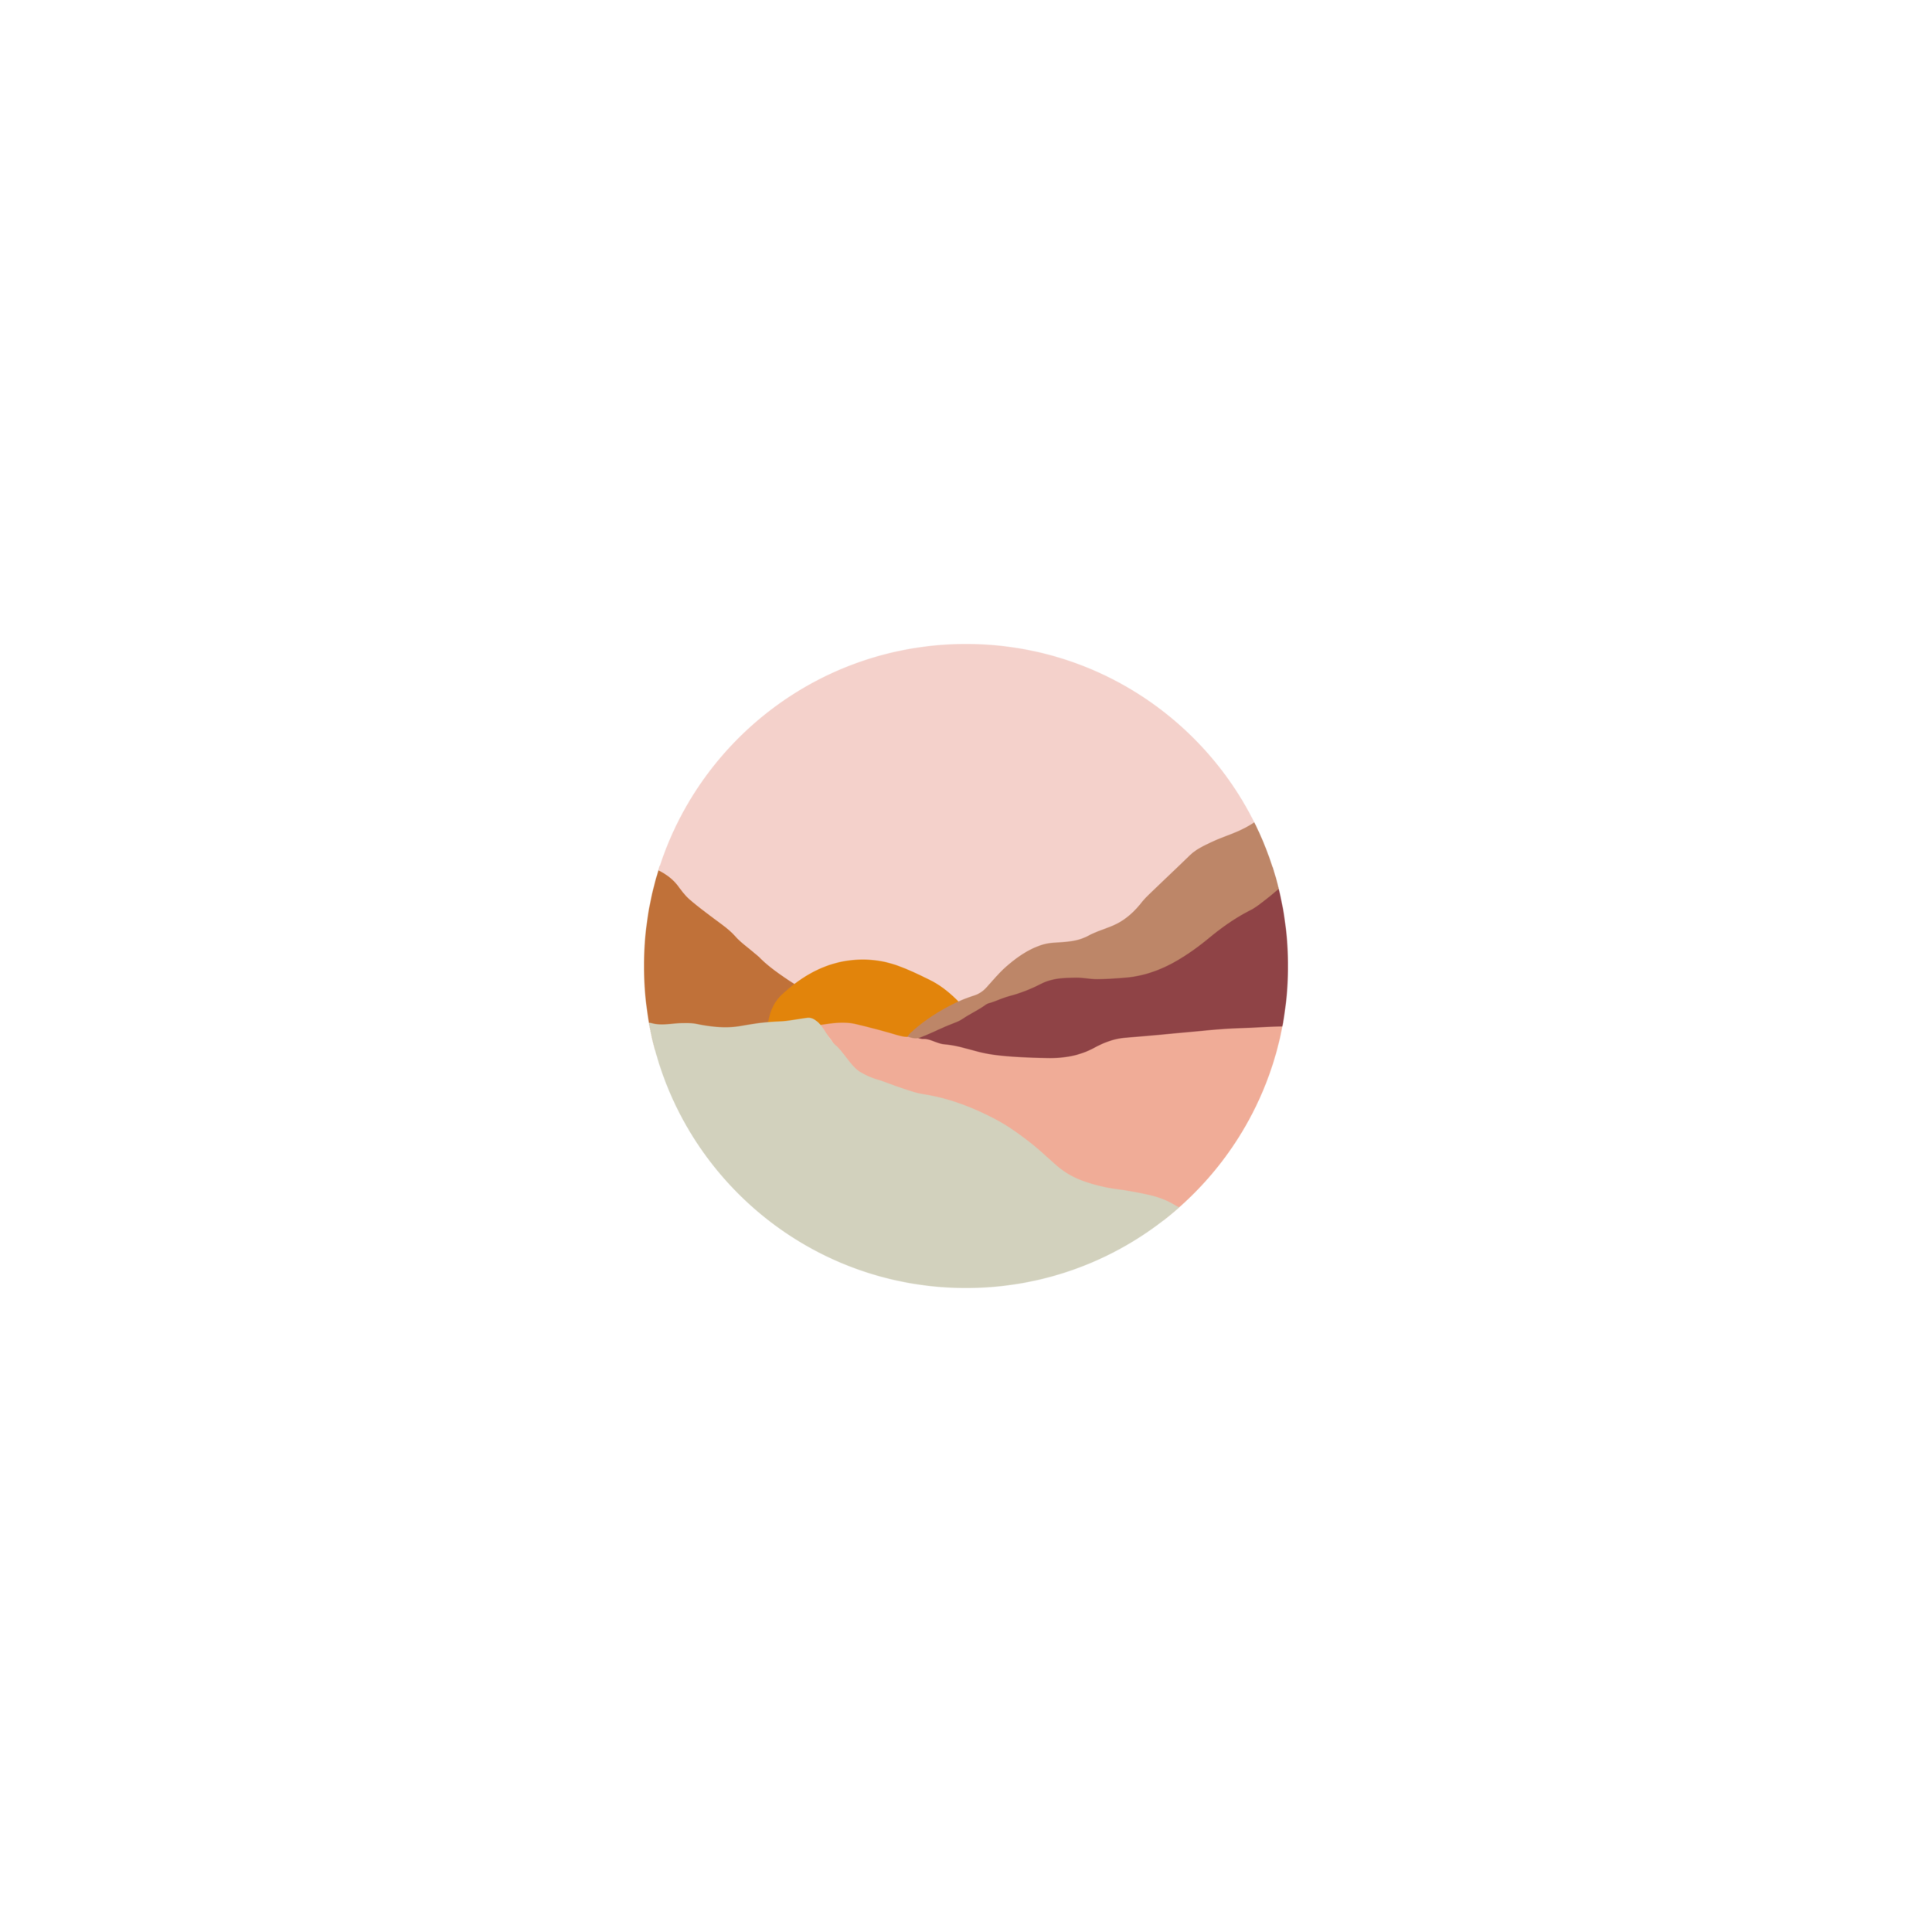 FLOWER & FREQUENCY LOGO-12.png